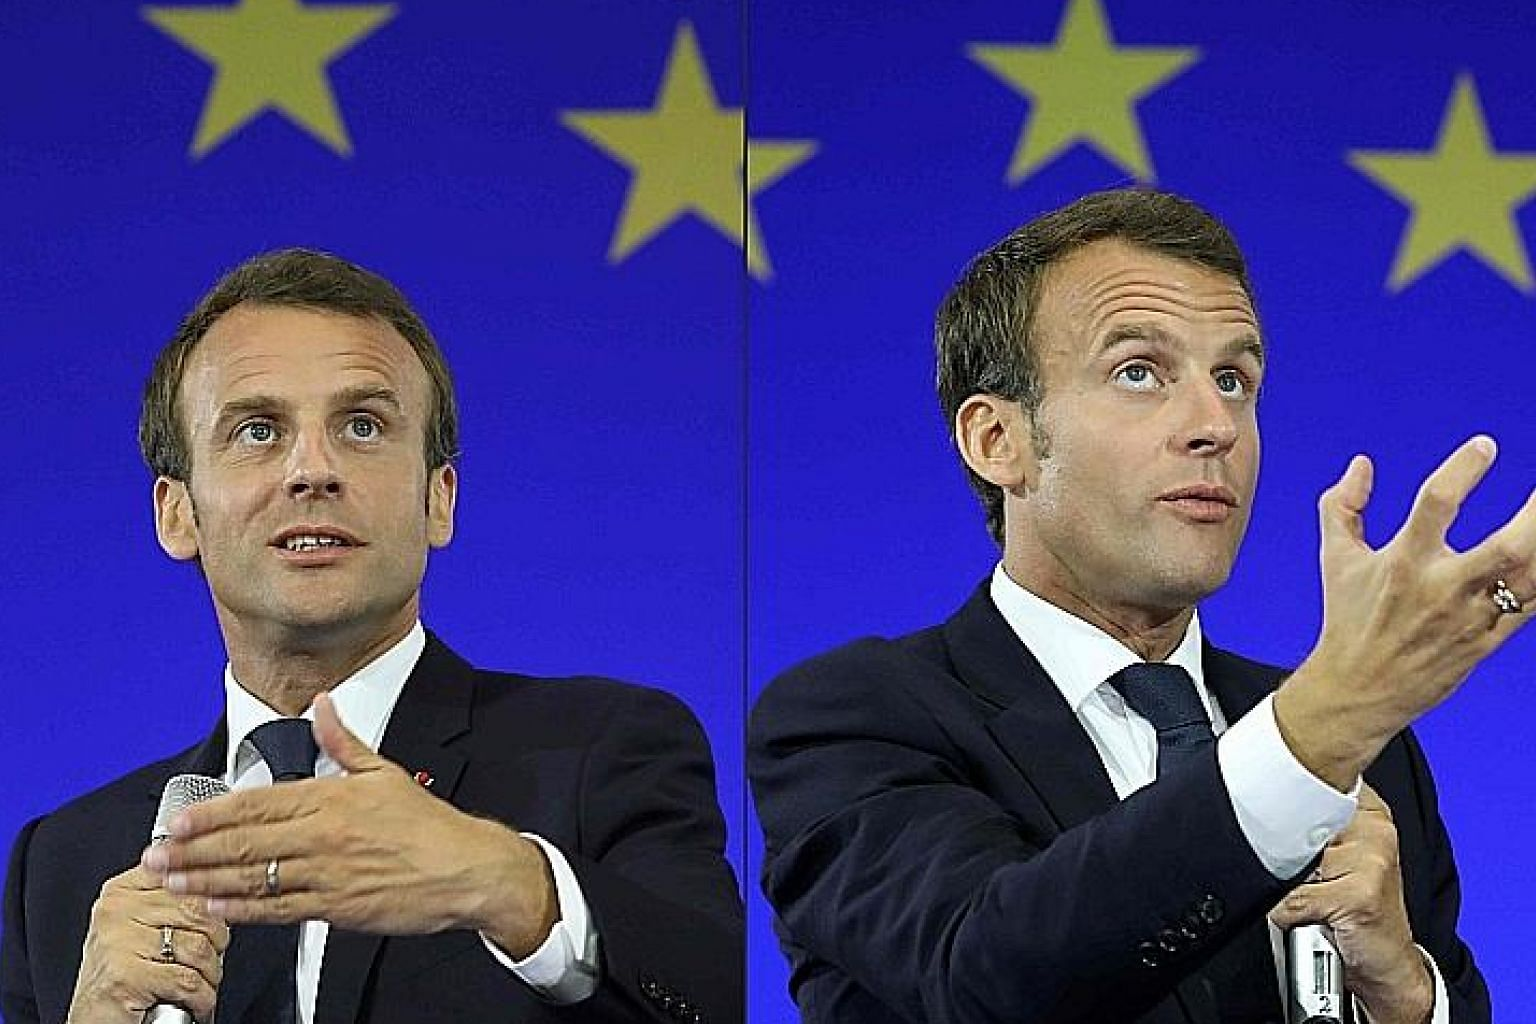 French President Emmanuel Macron rose to power not by pushing his way through France's existing ruling class, but by outmanoeuvring it altogether. More astonishingly still, he was elected not by bowing to the anti-globalisation and anti-immigration p